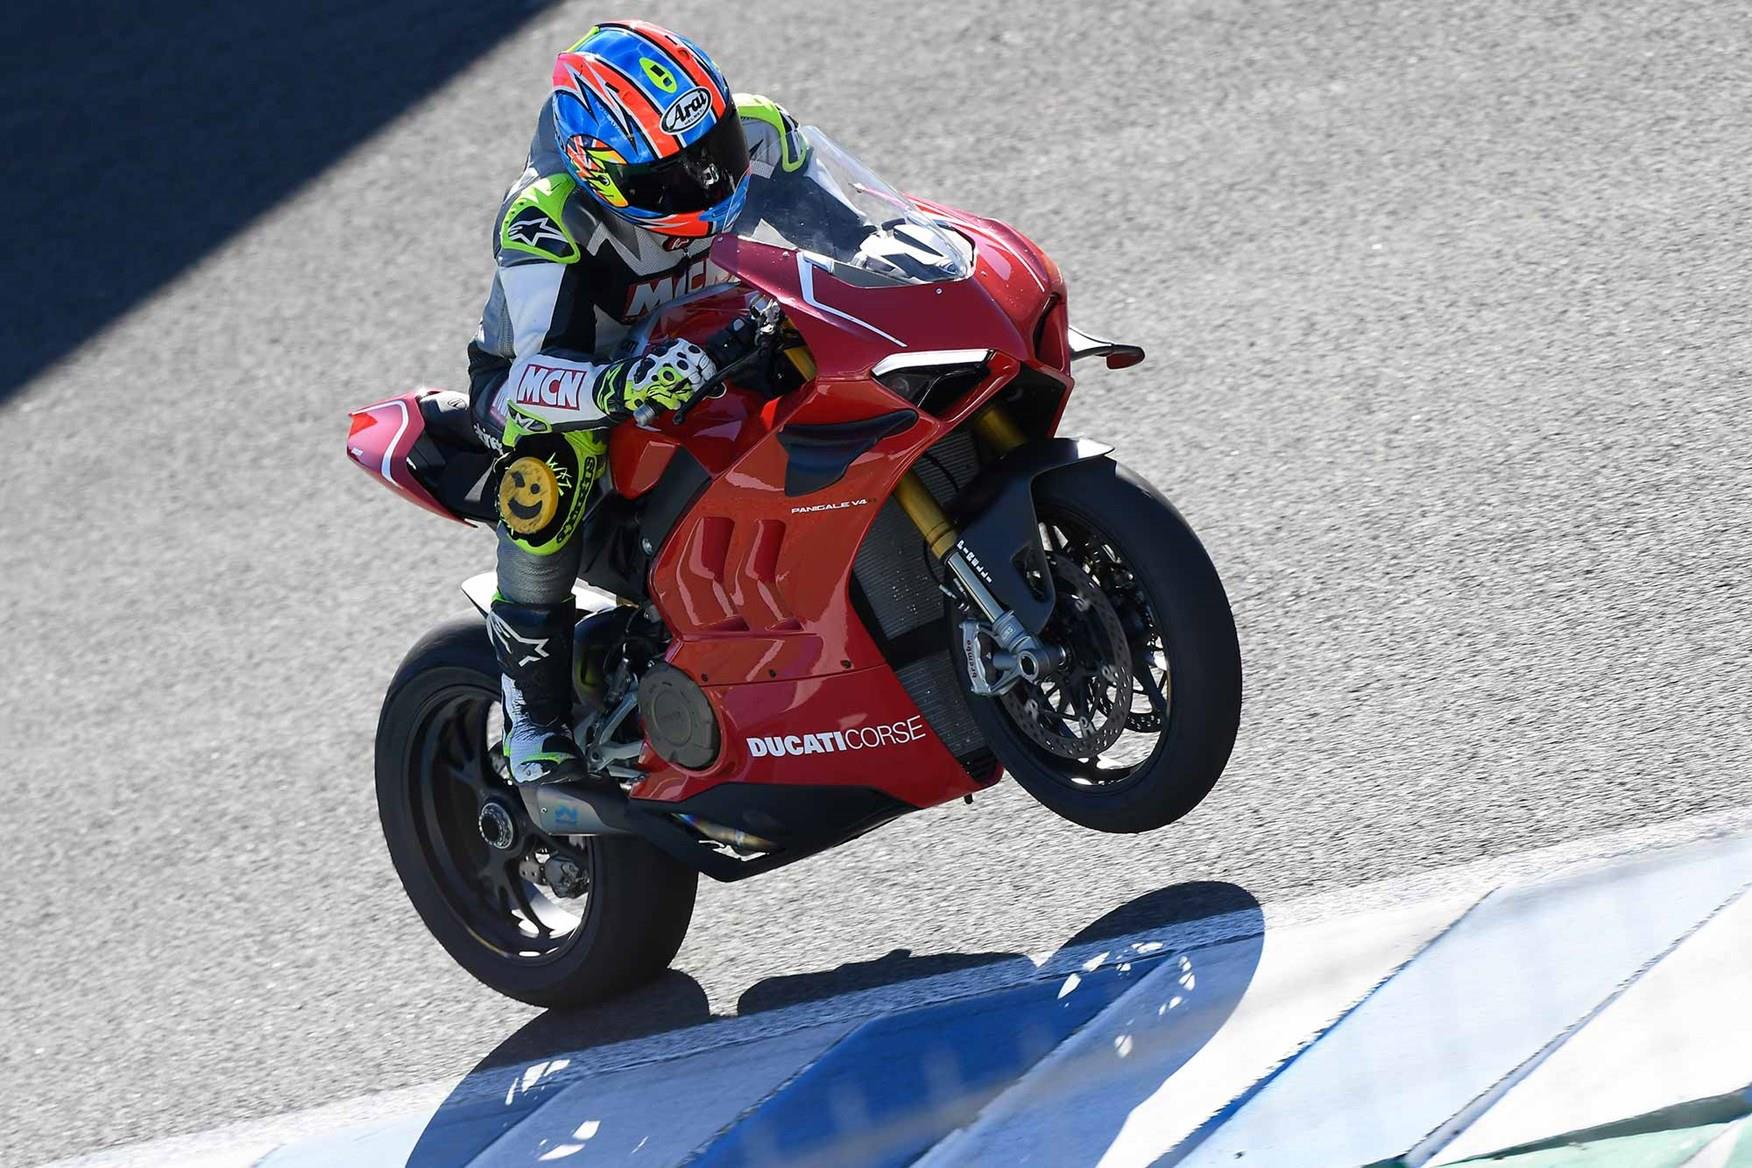 MCN's Michael Neeves rides the 2019 Ducati Panigale V4R